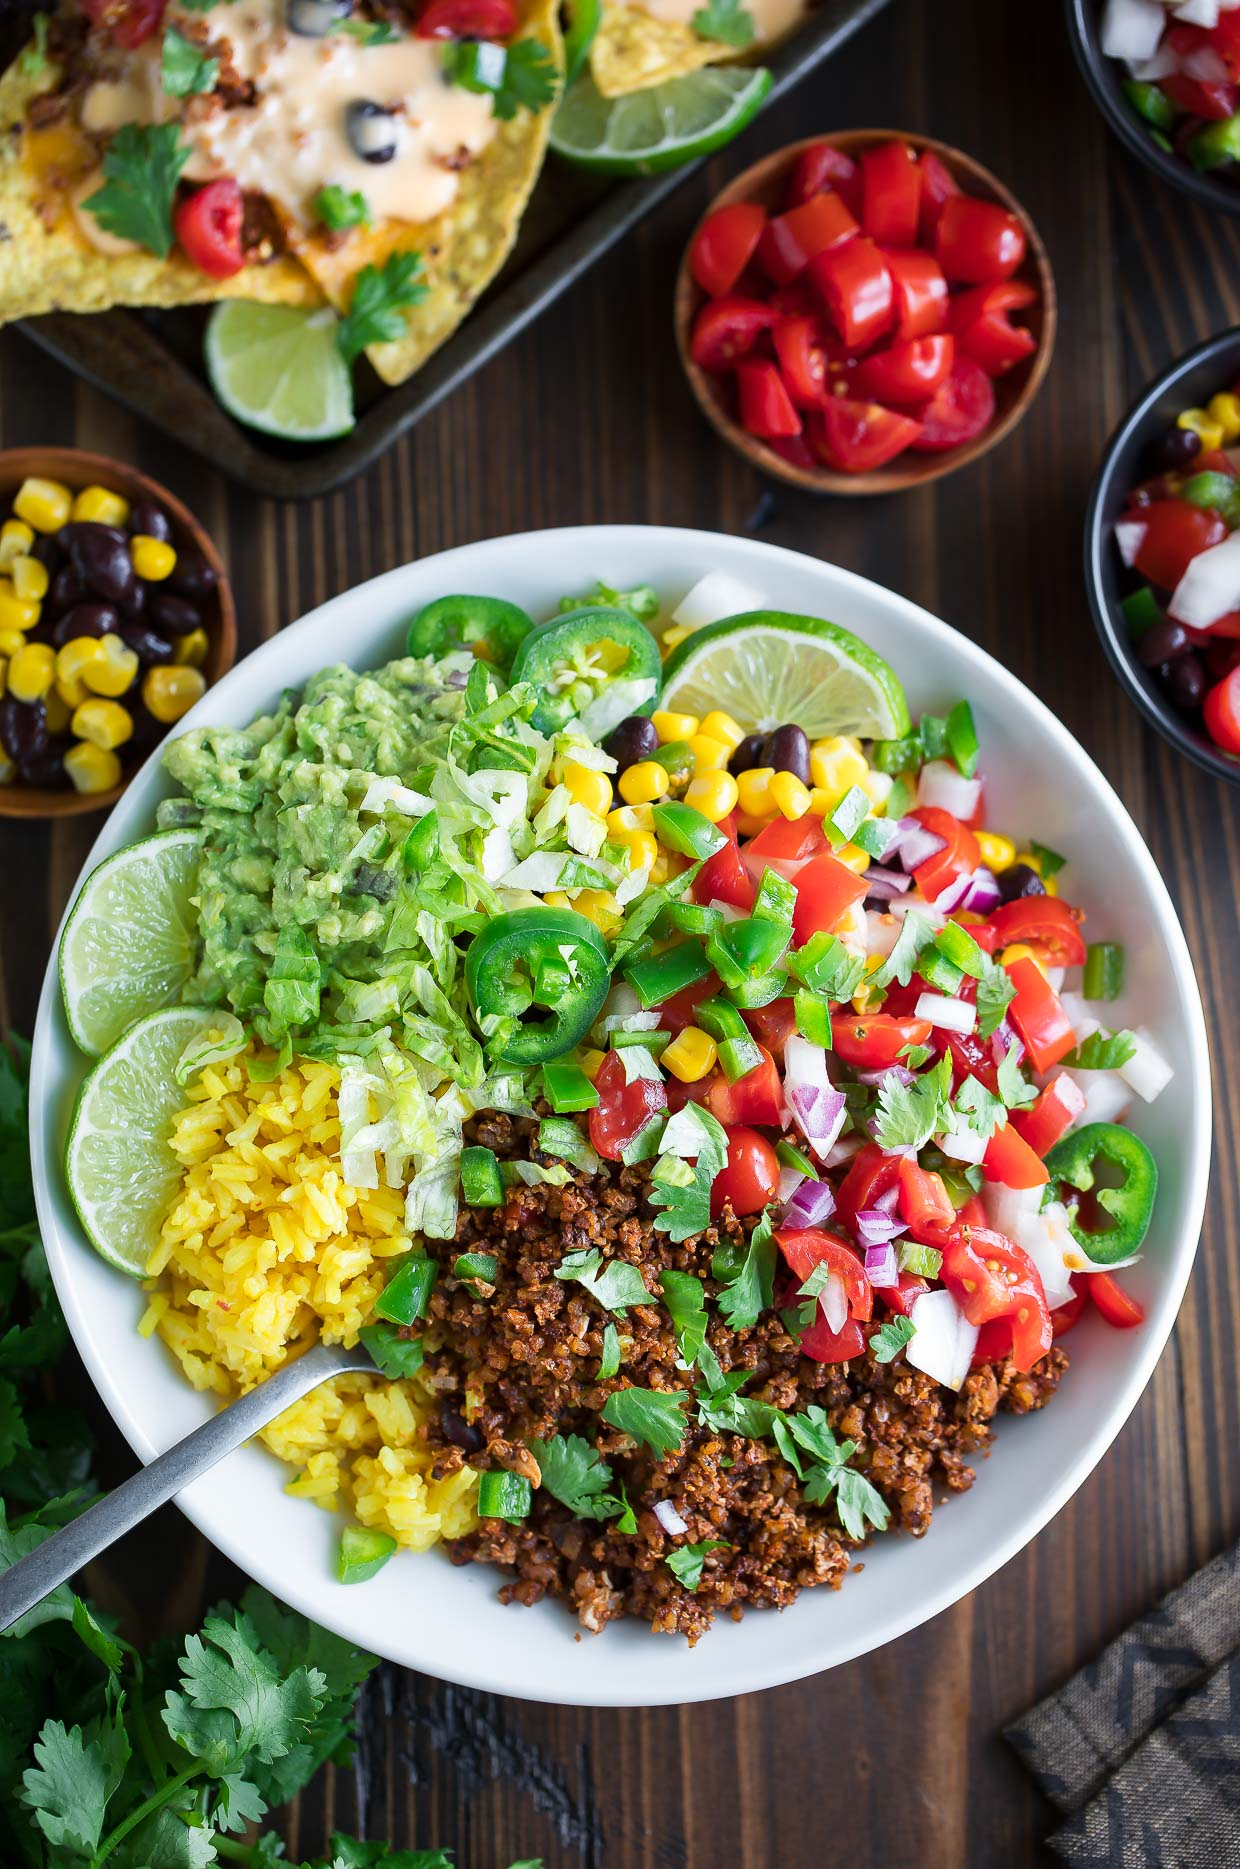 Weekly meal plan: 5 no-cook meals, like easy taco bowls (sans meat) | Vegetarian Taco Bowls at Peas & Crayons